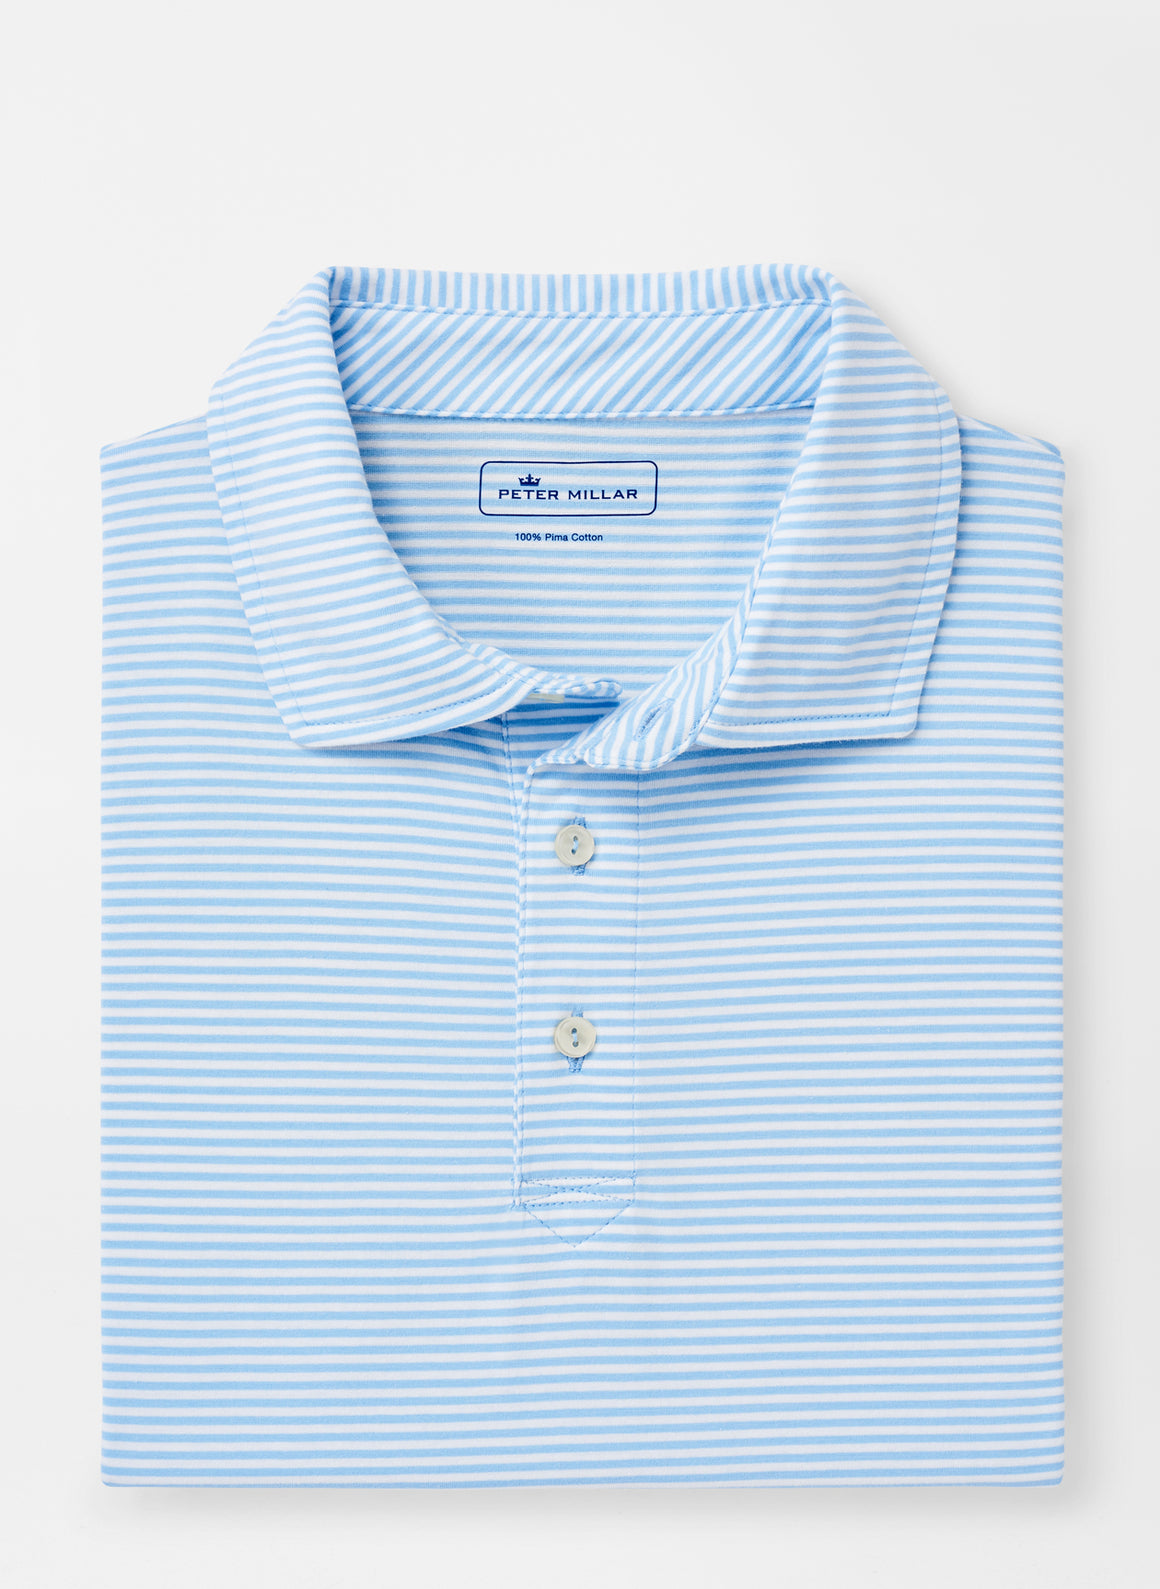 Kribi Beach Aqua Cotton Polo